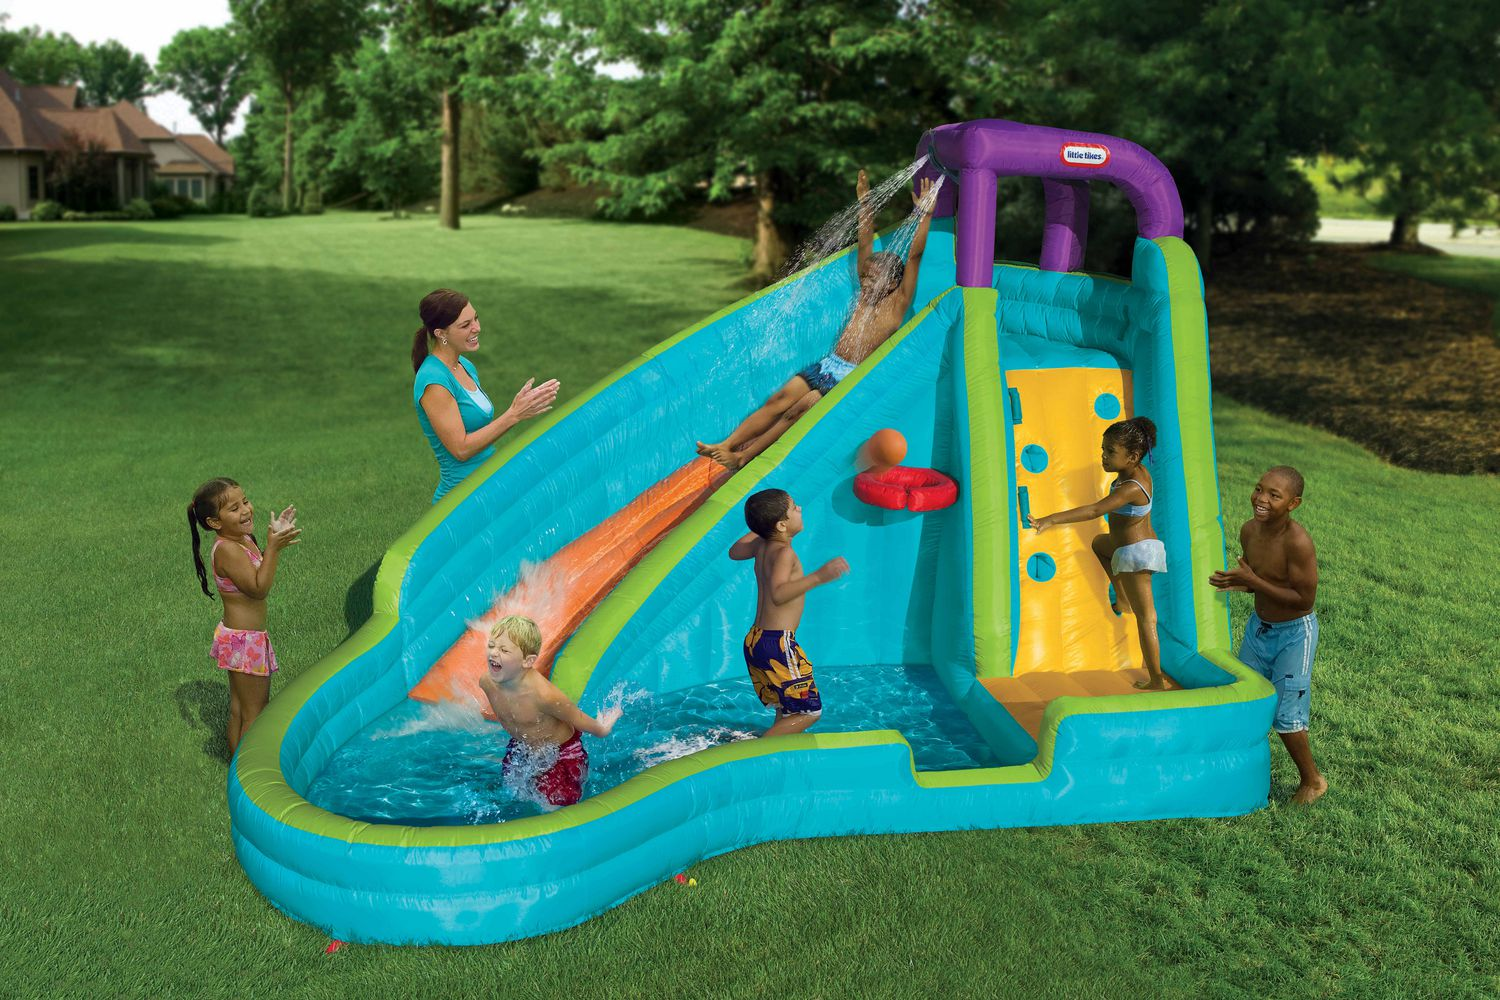 Little Tikes Outdoor Inflatables Slam U0027nu0027 Curve Water Slide | Walmart Canada